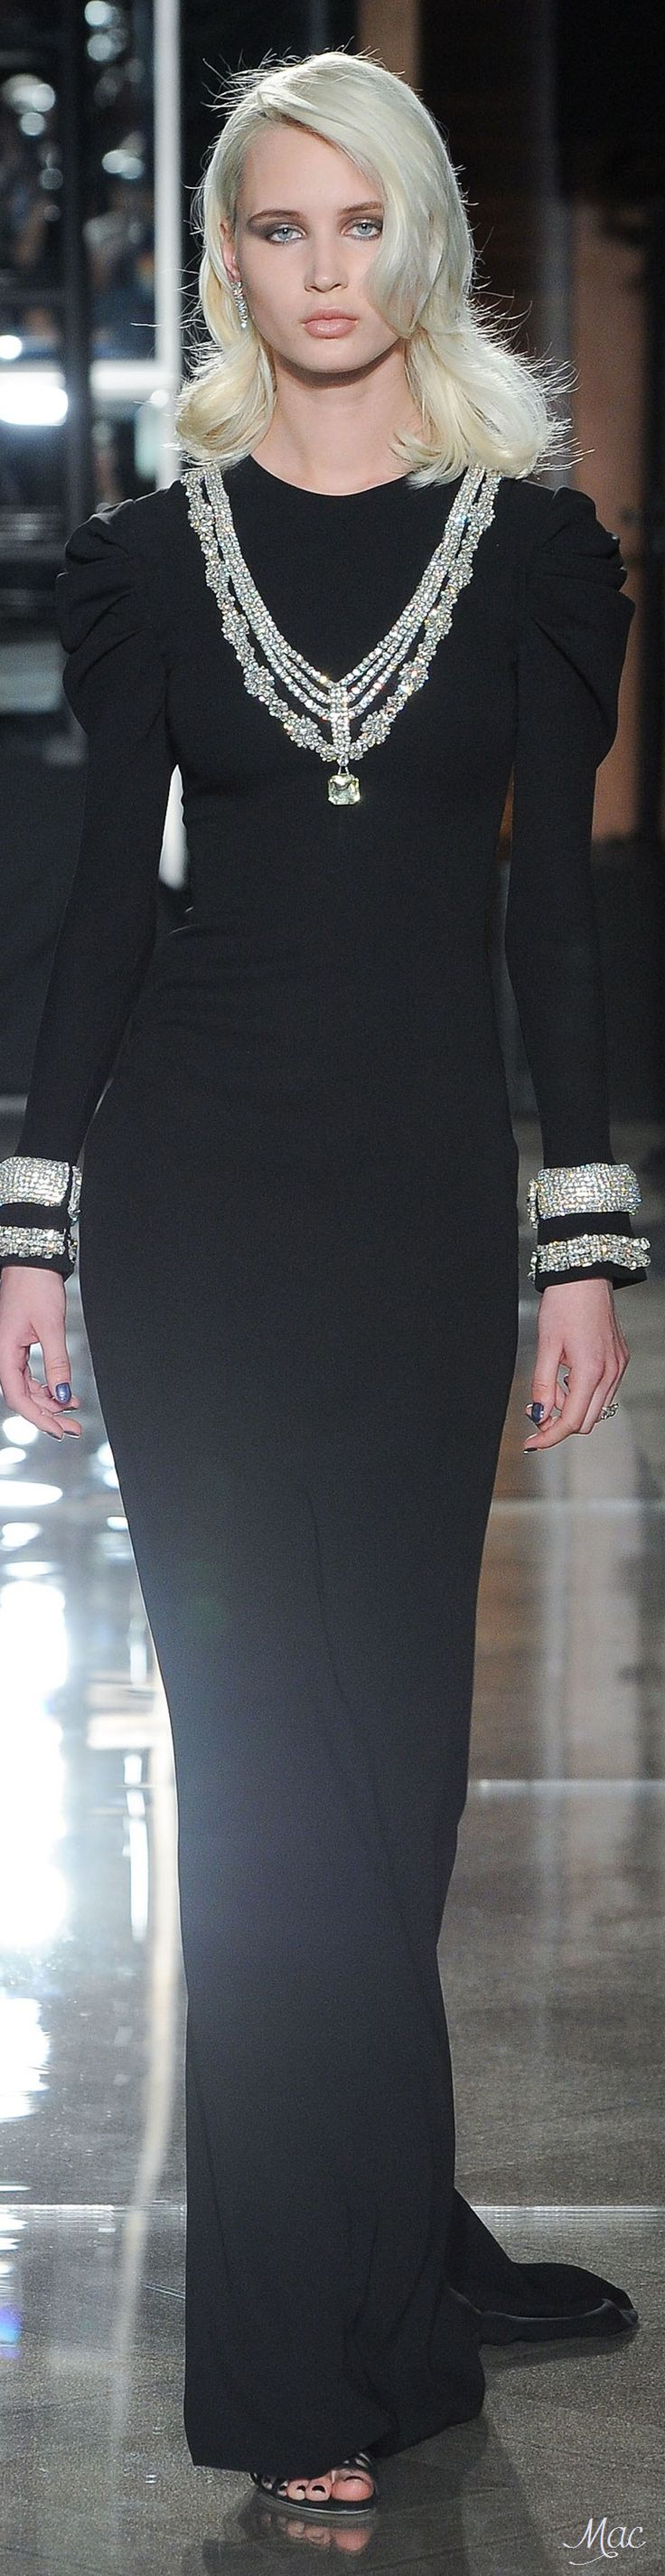 58 Best Fashion Ad Hoc Images On Pinterest Store Black Floral French Cuff Spring 2018 Reem Acra From The Bridal Collection